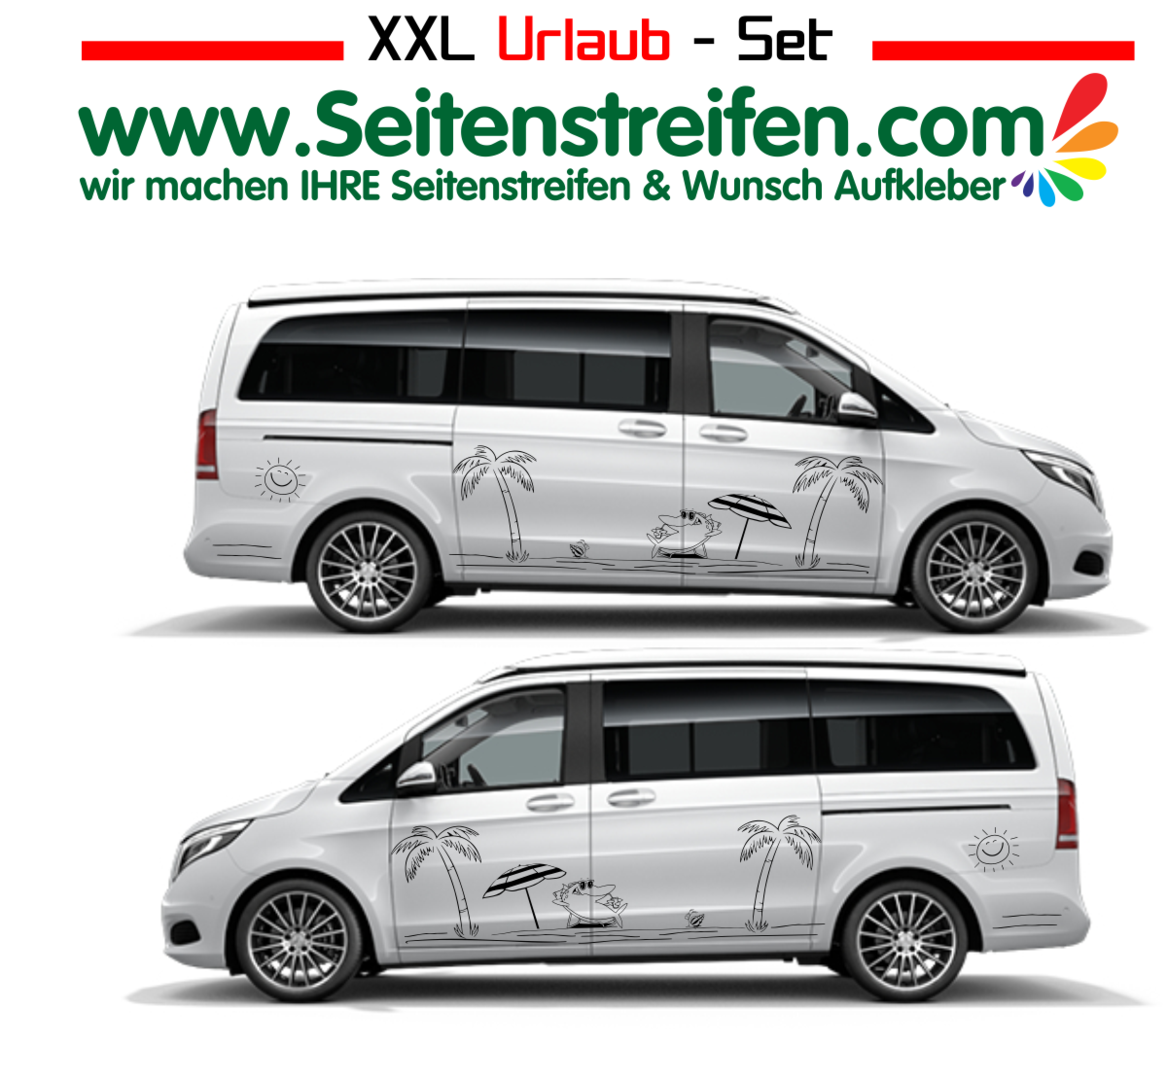 Mercedes Benz Class V Vito - 447/639/638 XXL Vacation Set Panorama Outdoor - Sticker Kit - Nº U1931